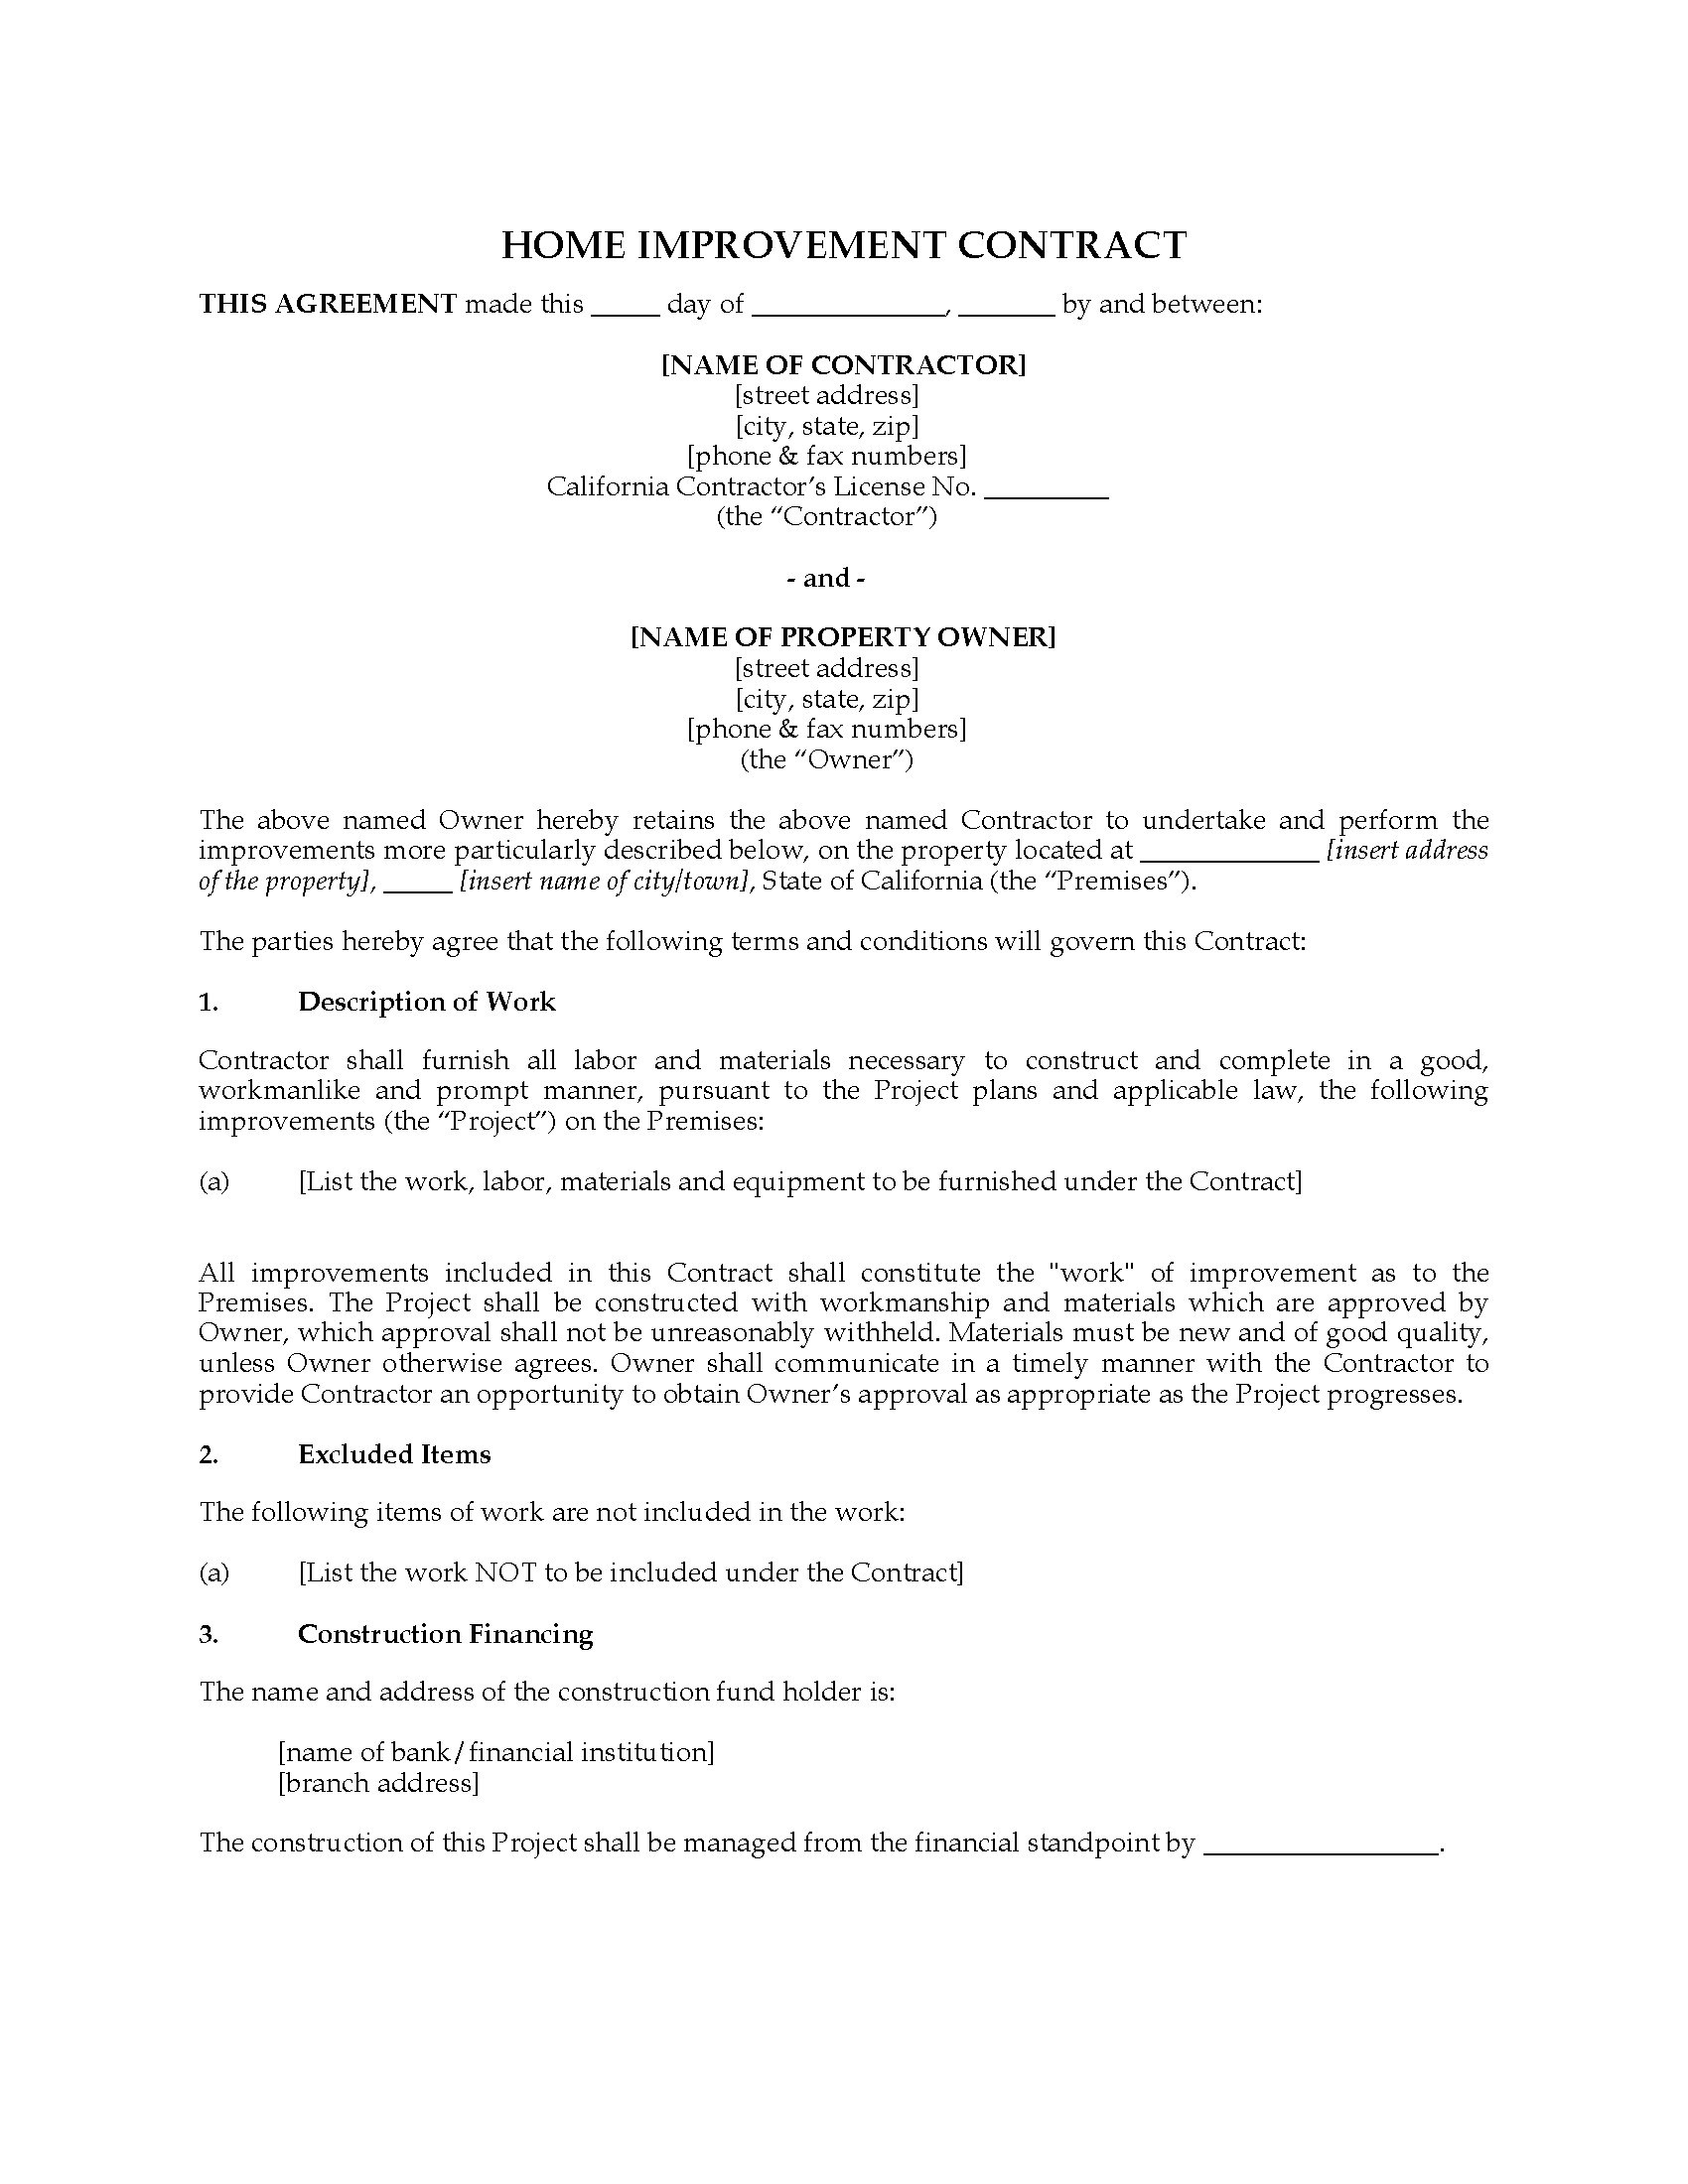 Free Printable Home Improvement Contracts